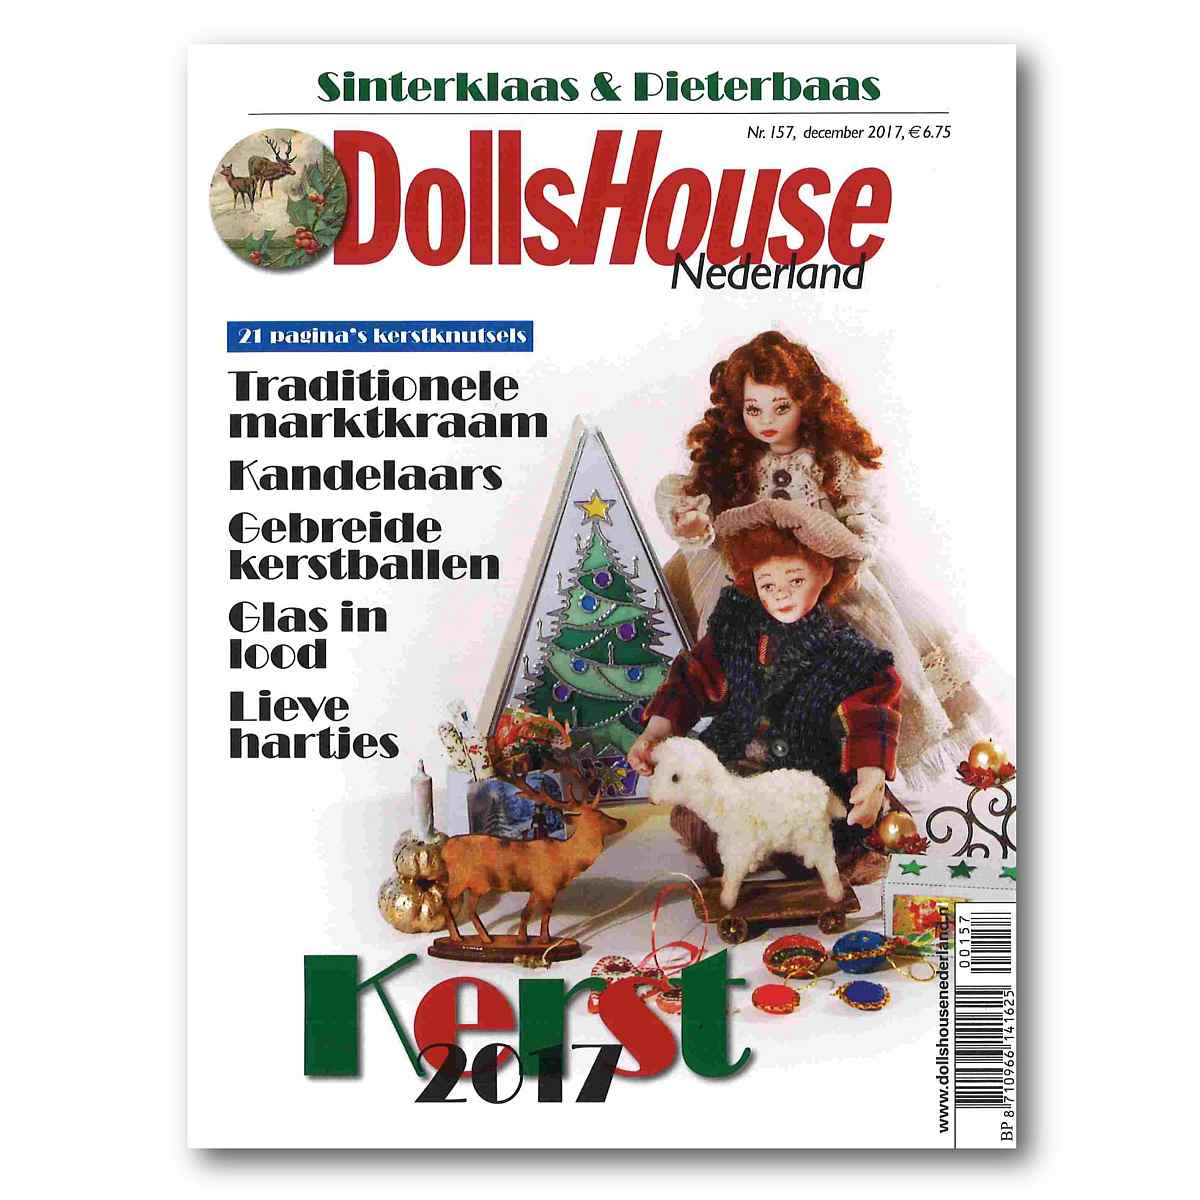 Dolls House Nederland (NL)